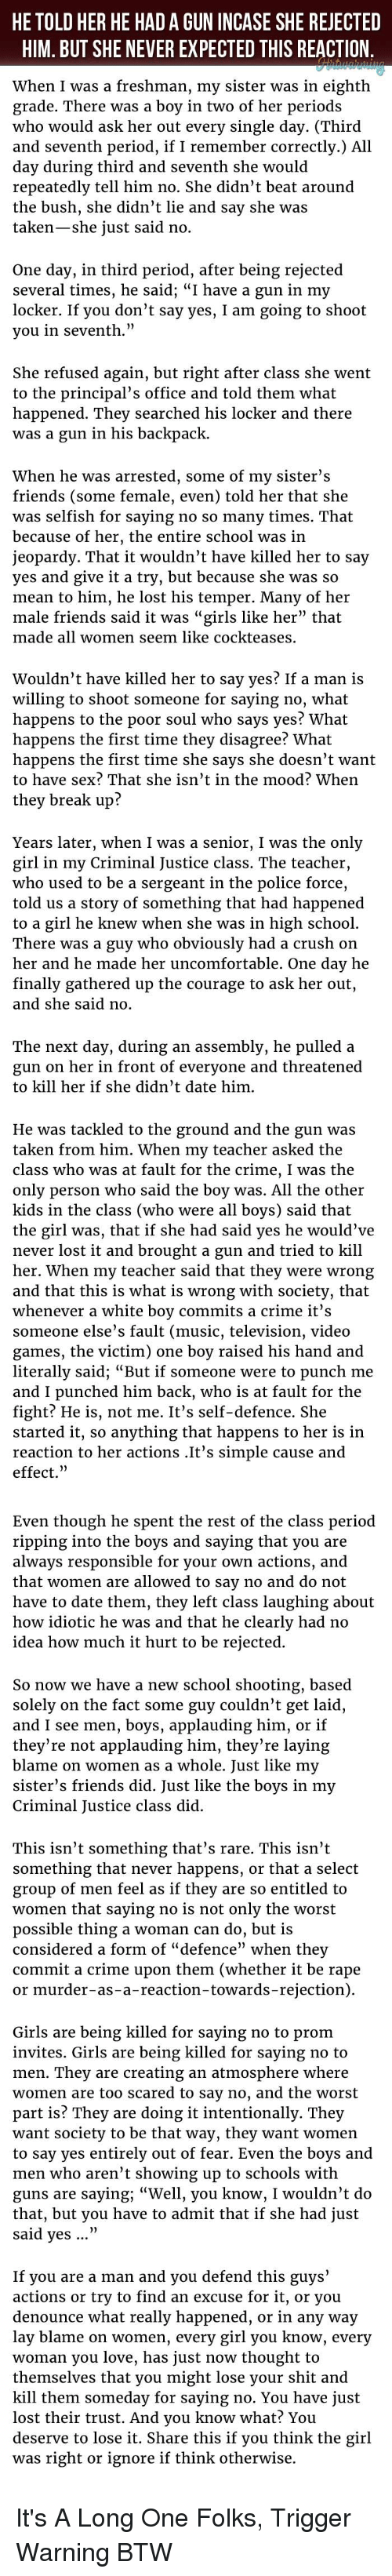 HE TOLD HER HE HAD a GUN INCASE SHE REJECTED HIM BUT SHE NEVER